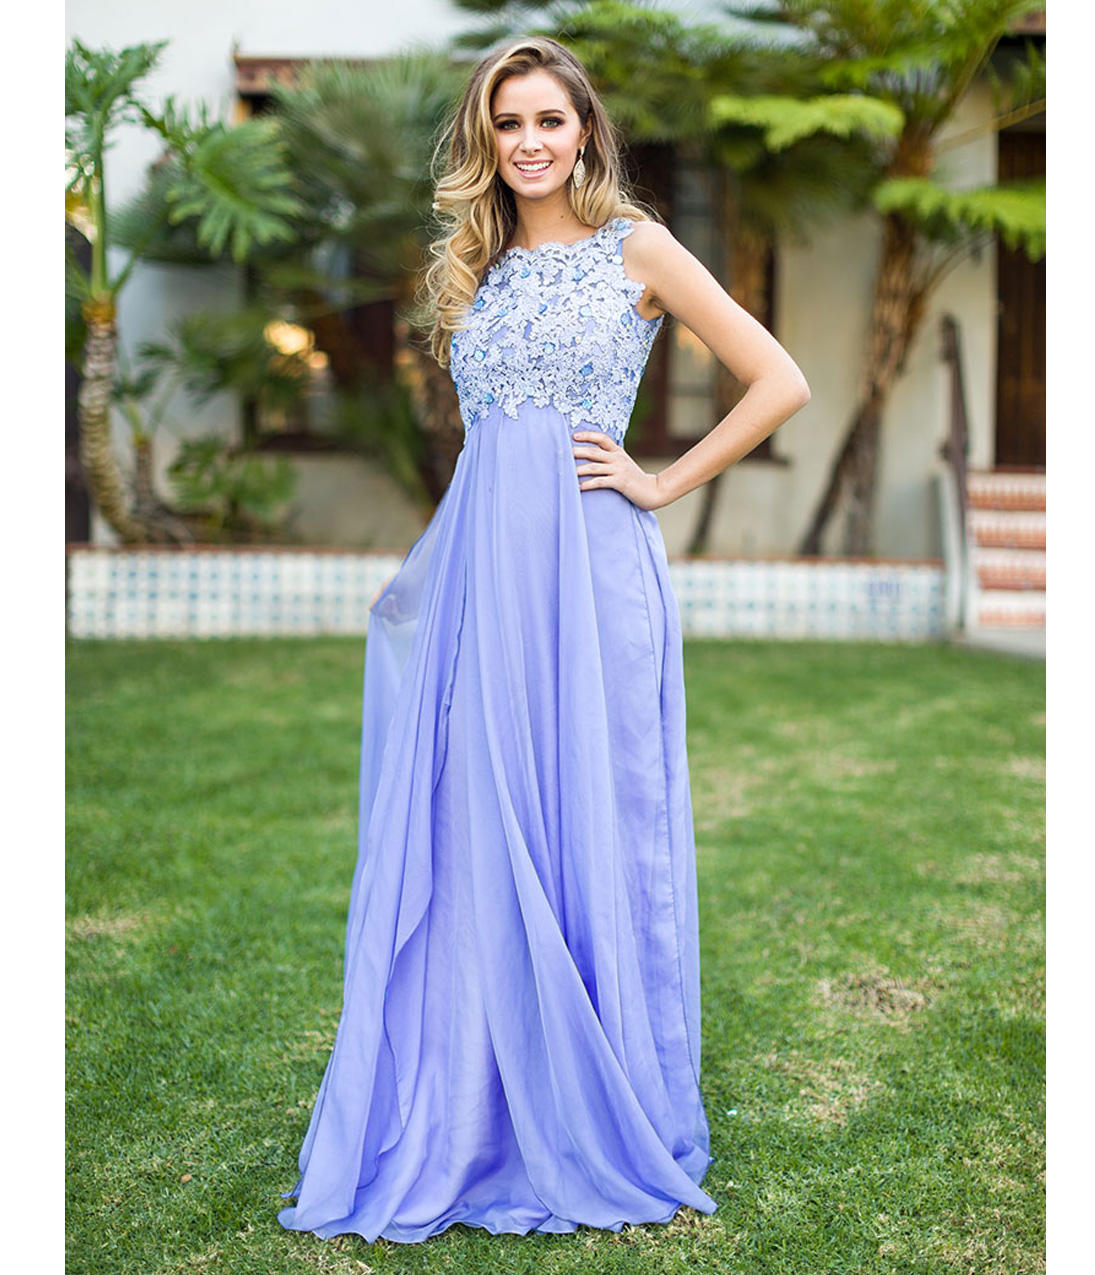 Preorder Periwinkle Empire Waist from Unique Vintage